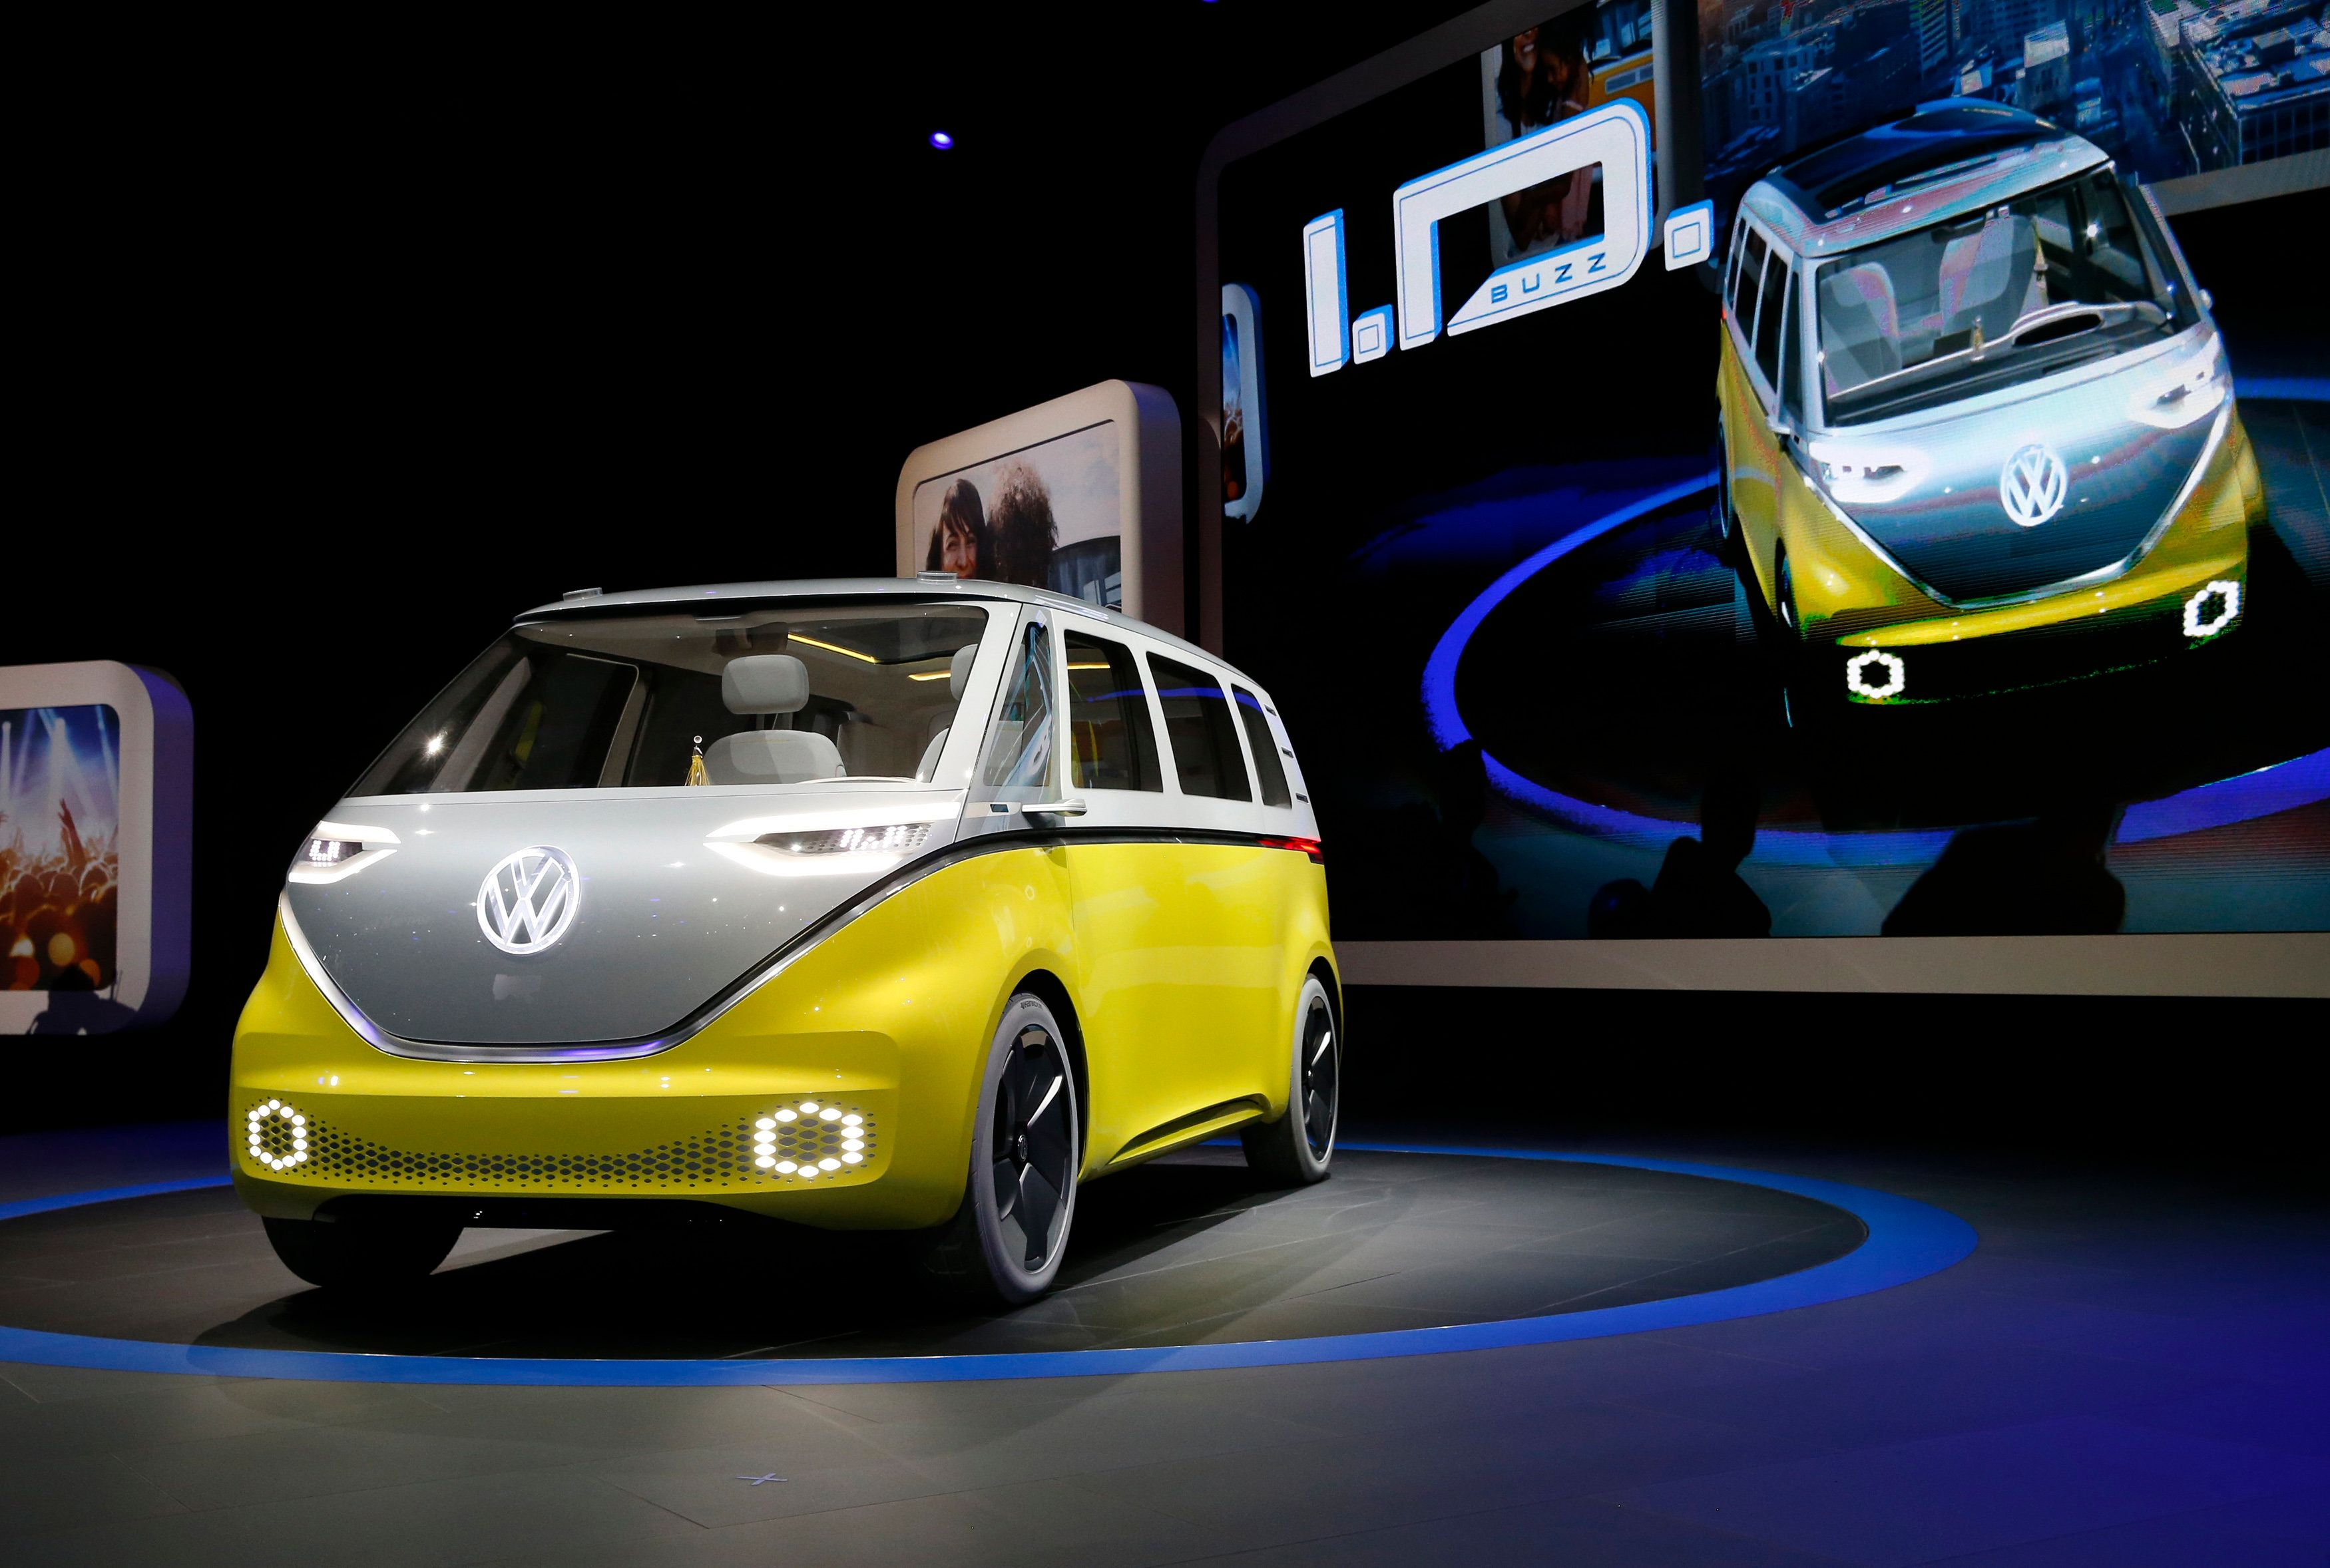 Volkswagen to electrify entire range by 2030